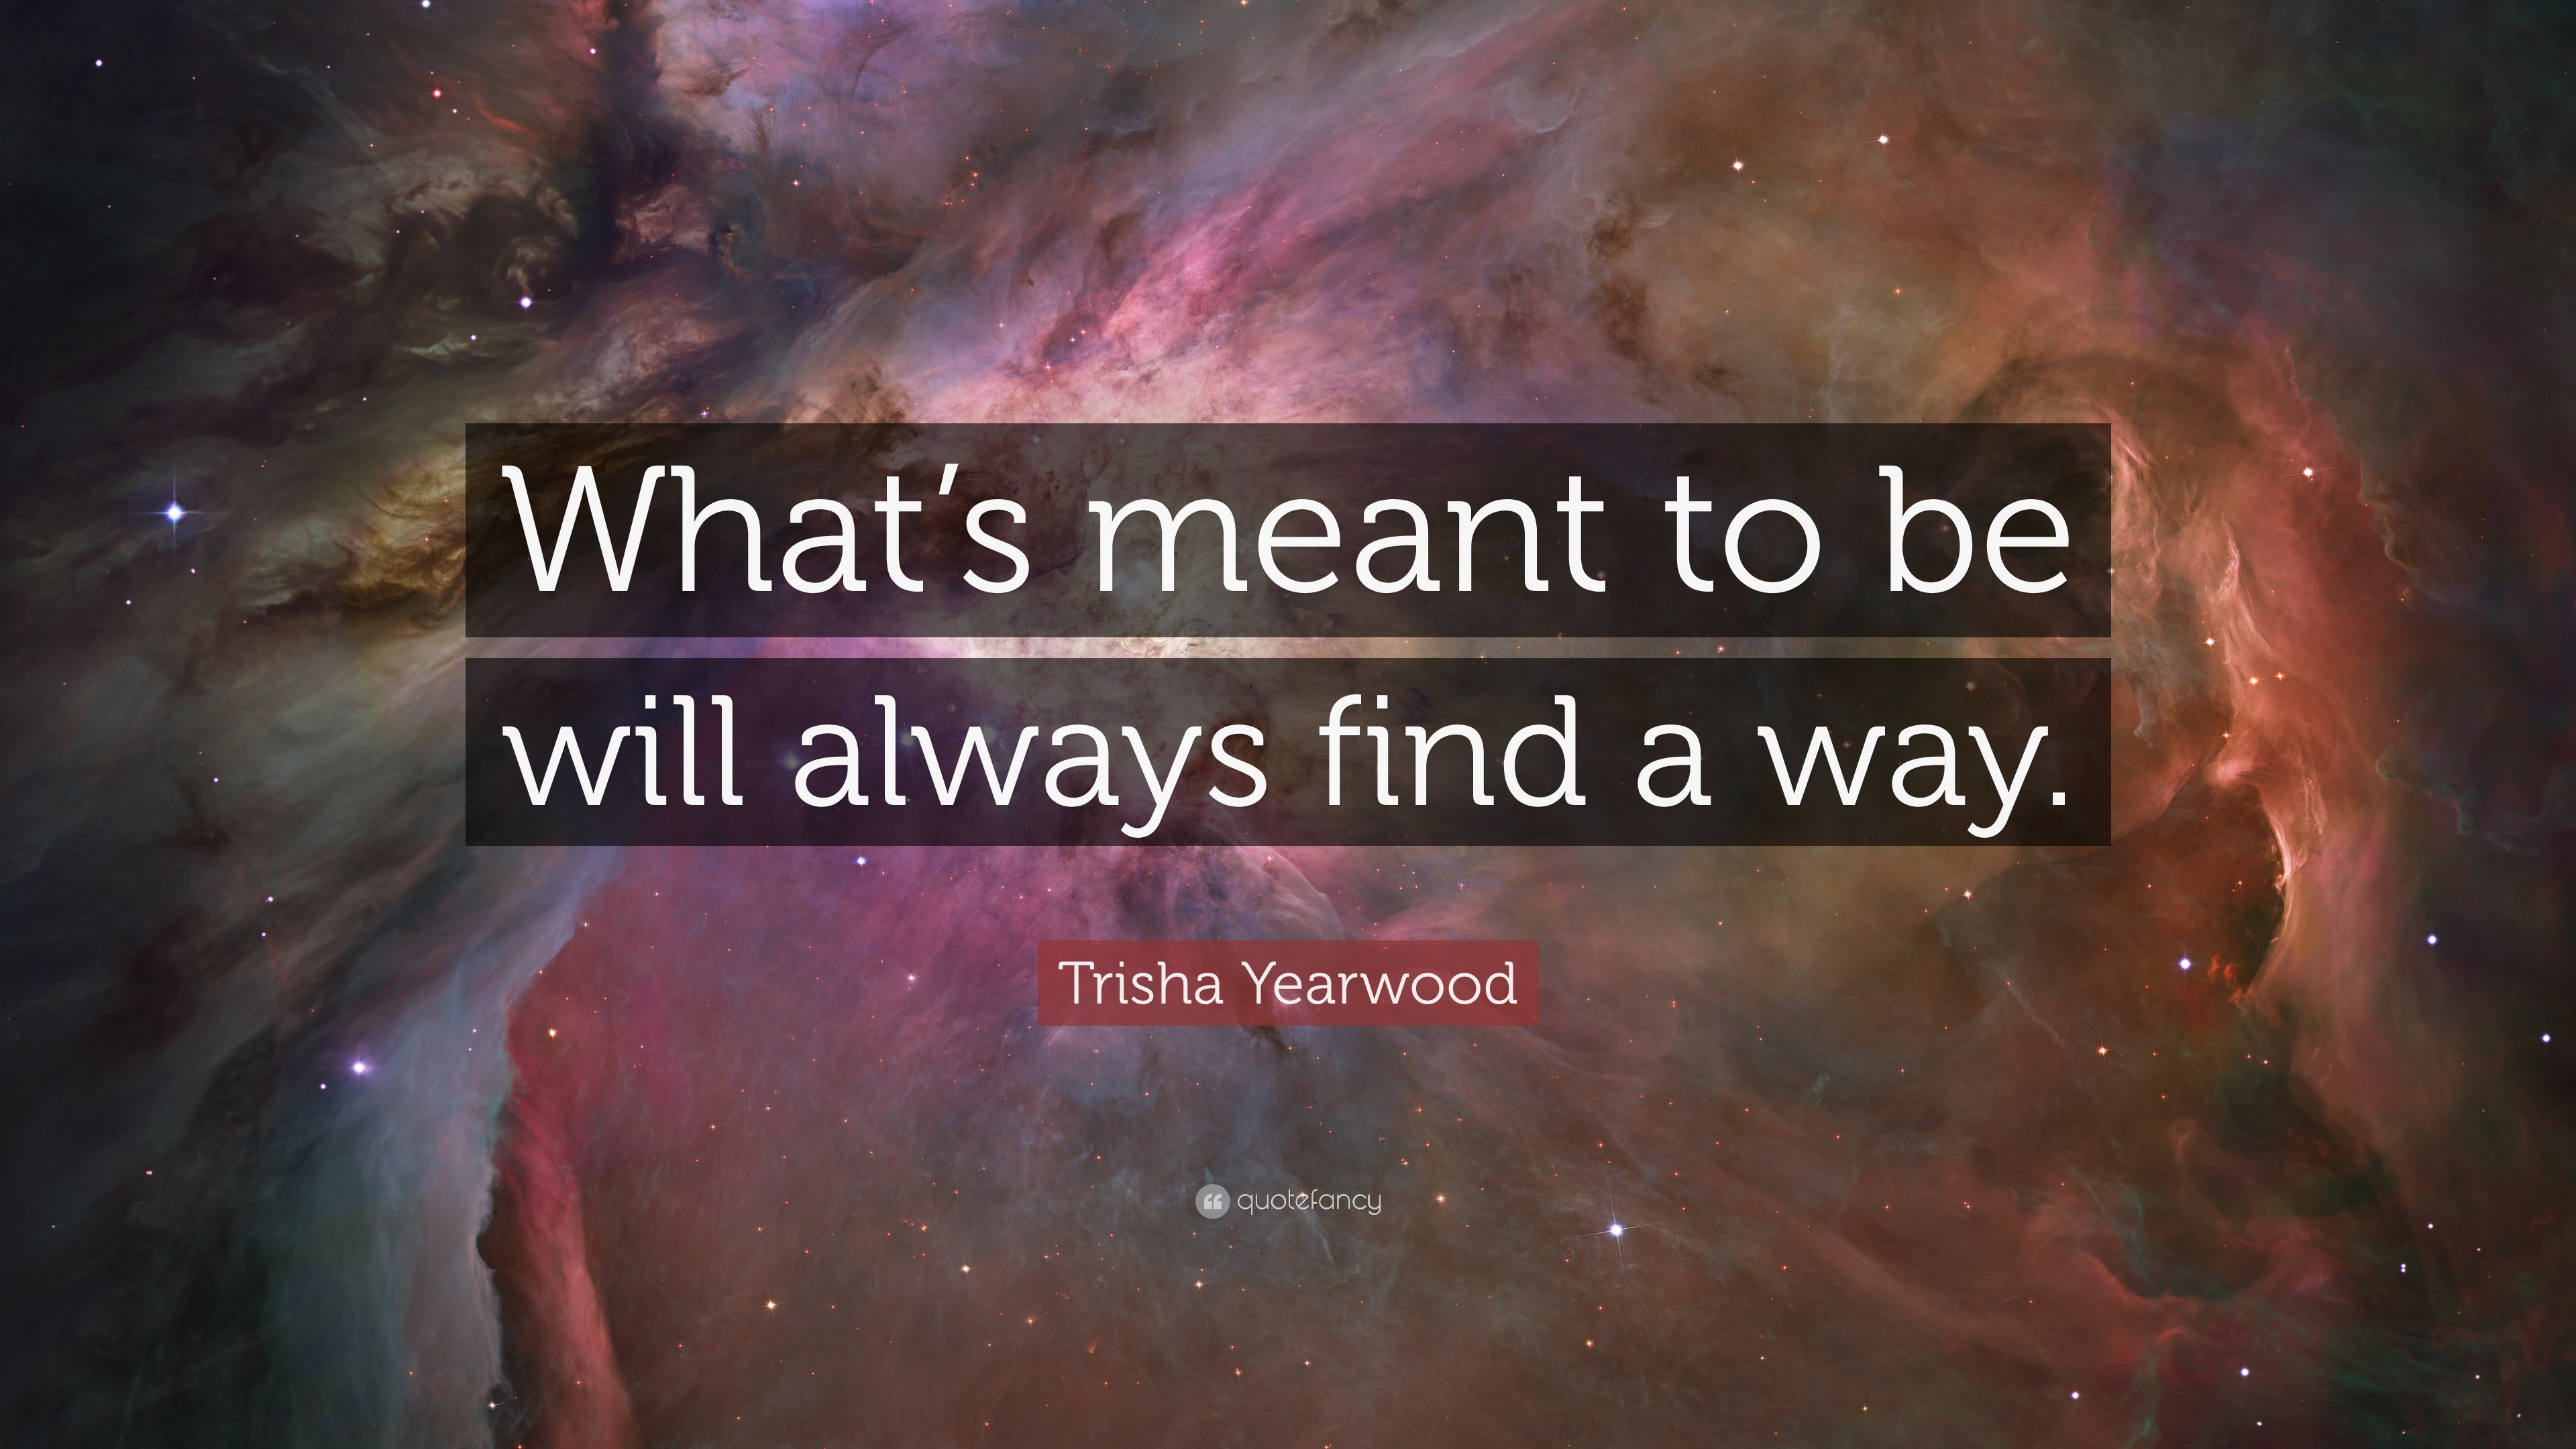 Trisha Yearwood Quote: Whats meant to be will always